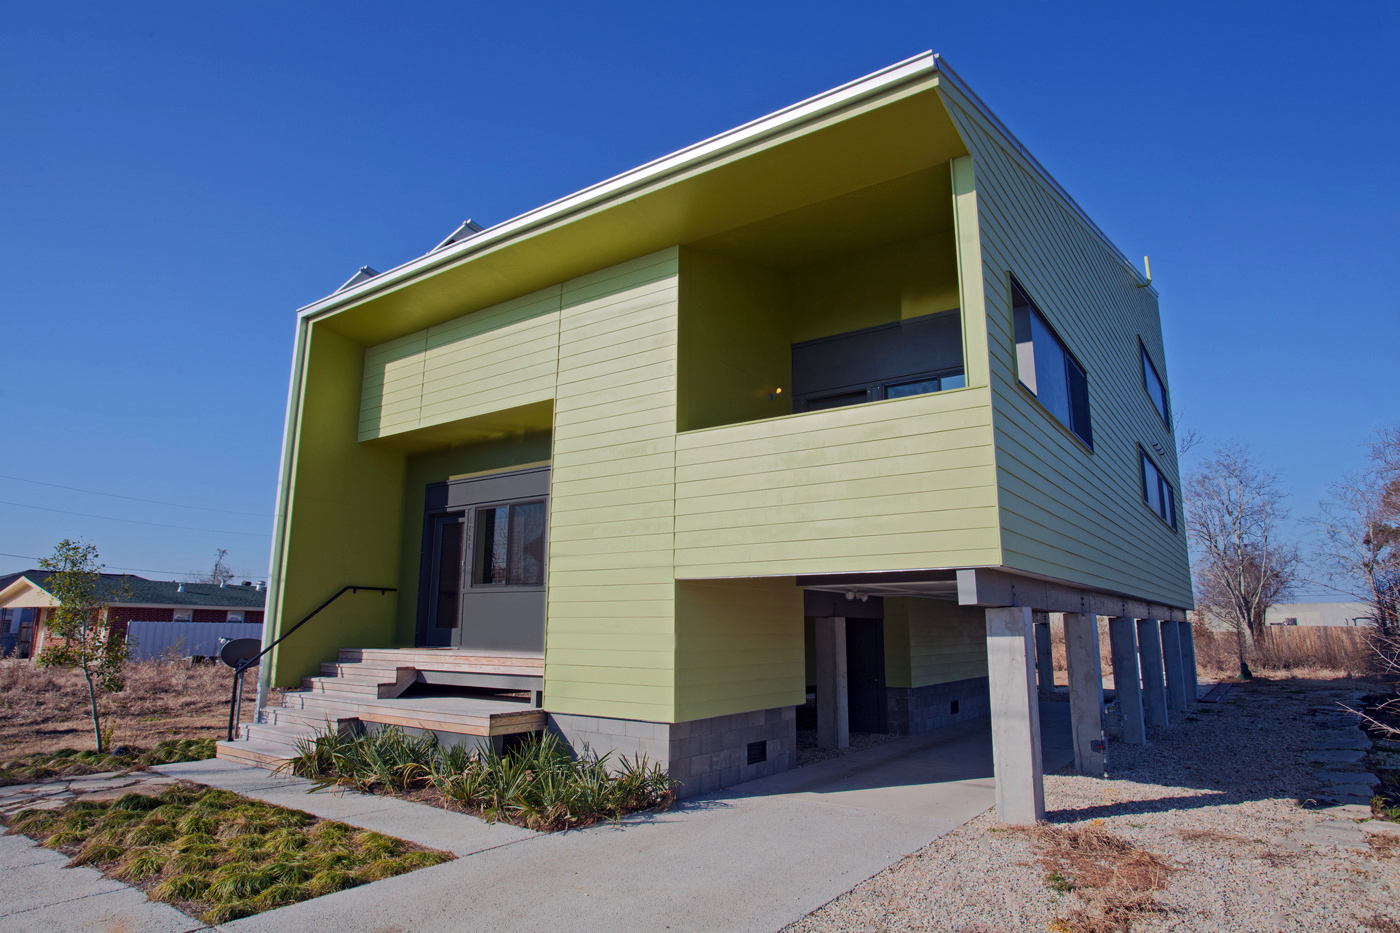 Front view of a modern two-story home with carport on onesie and steps up the front door on the other side